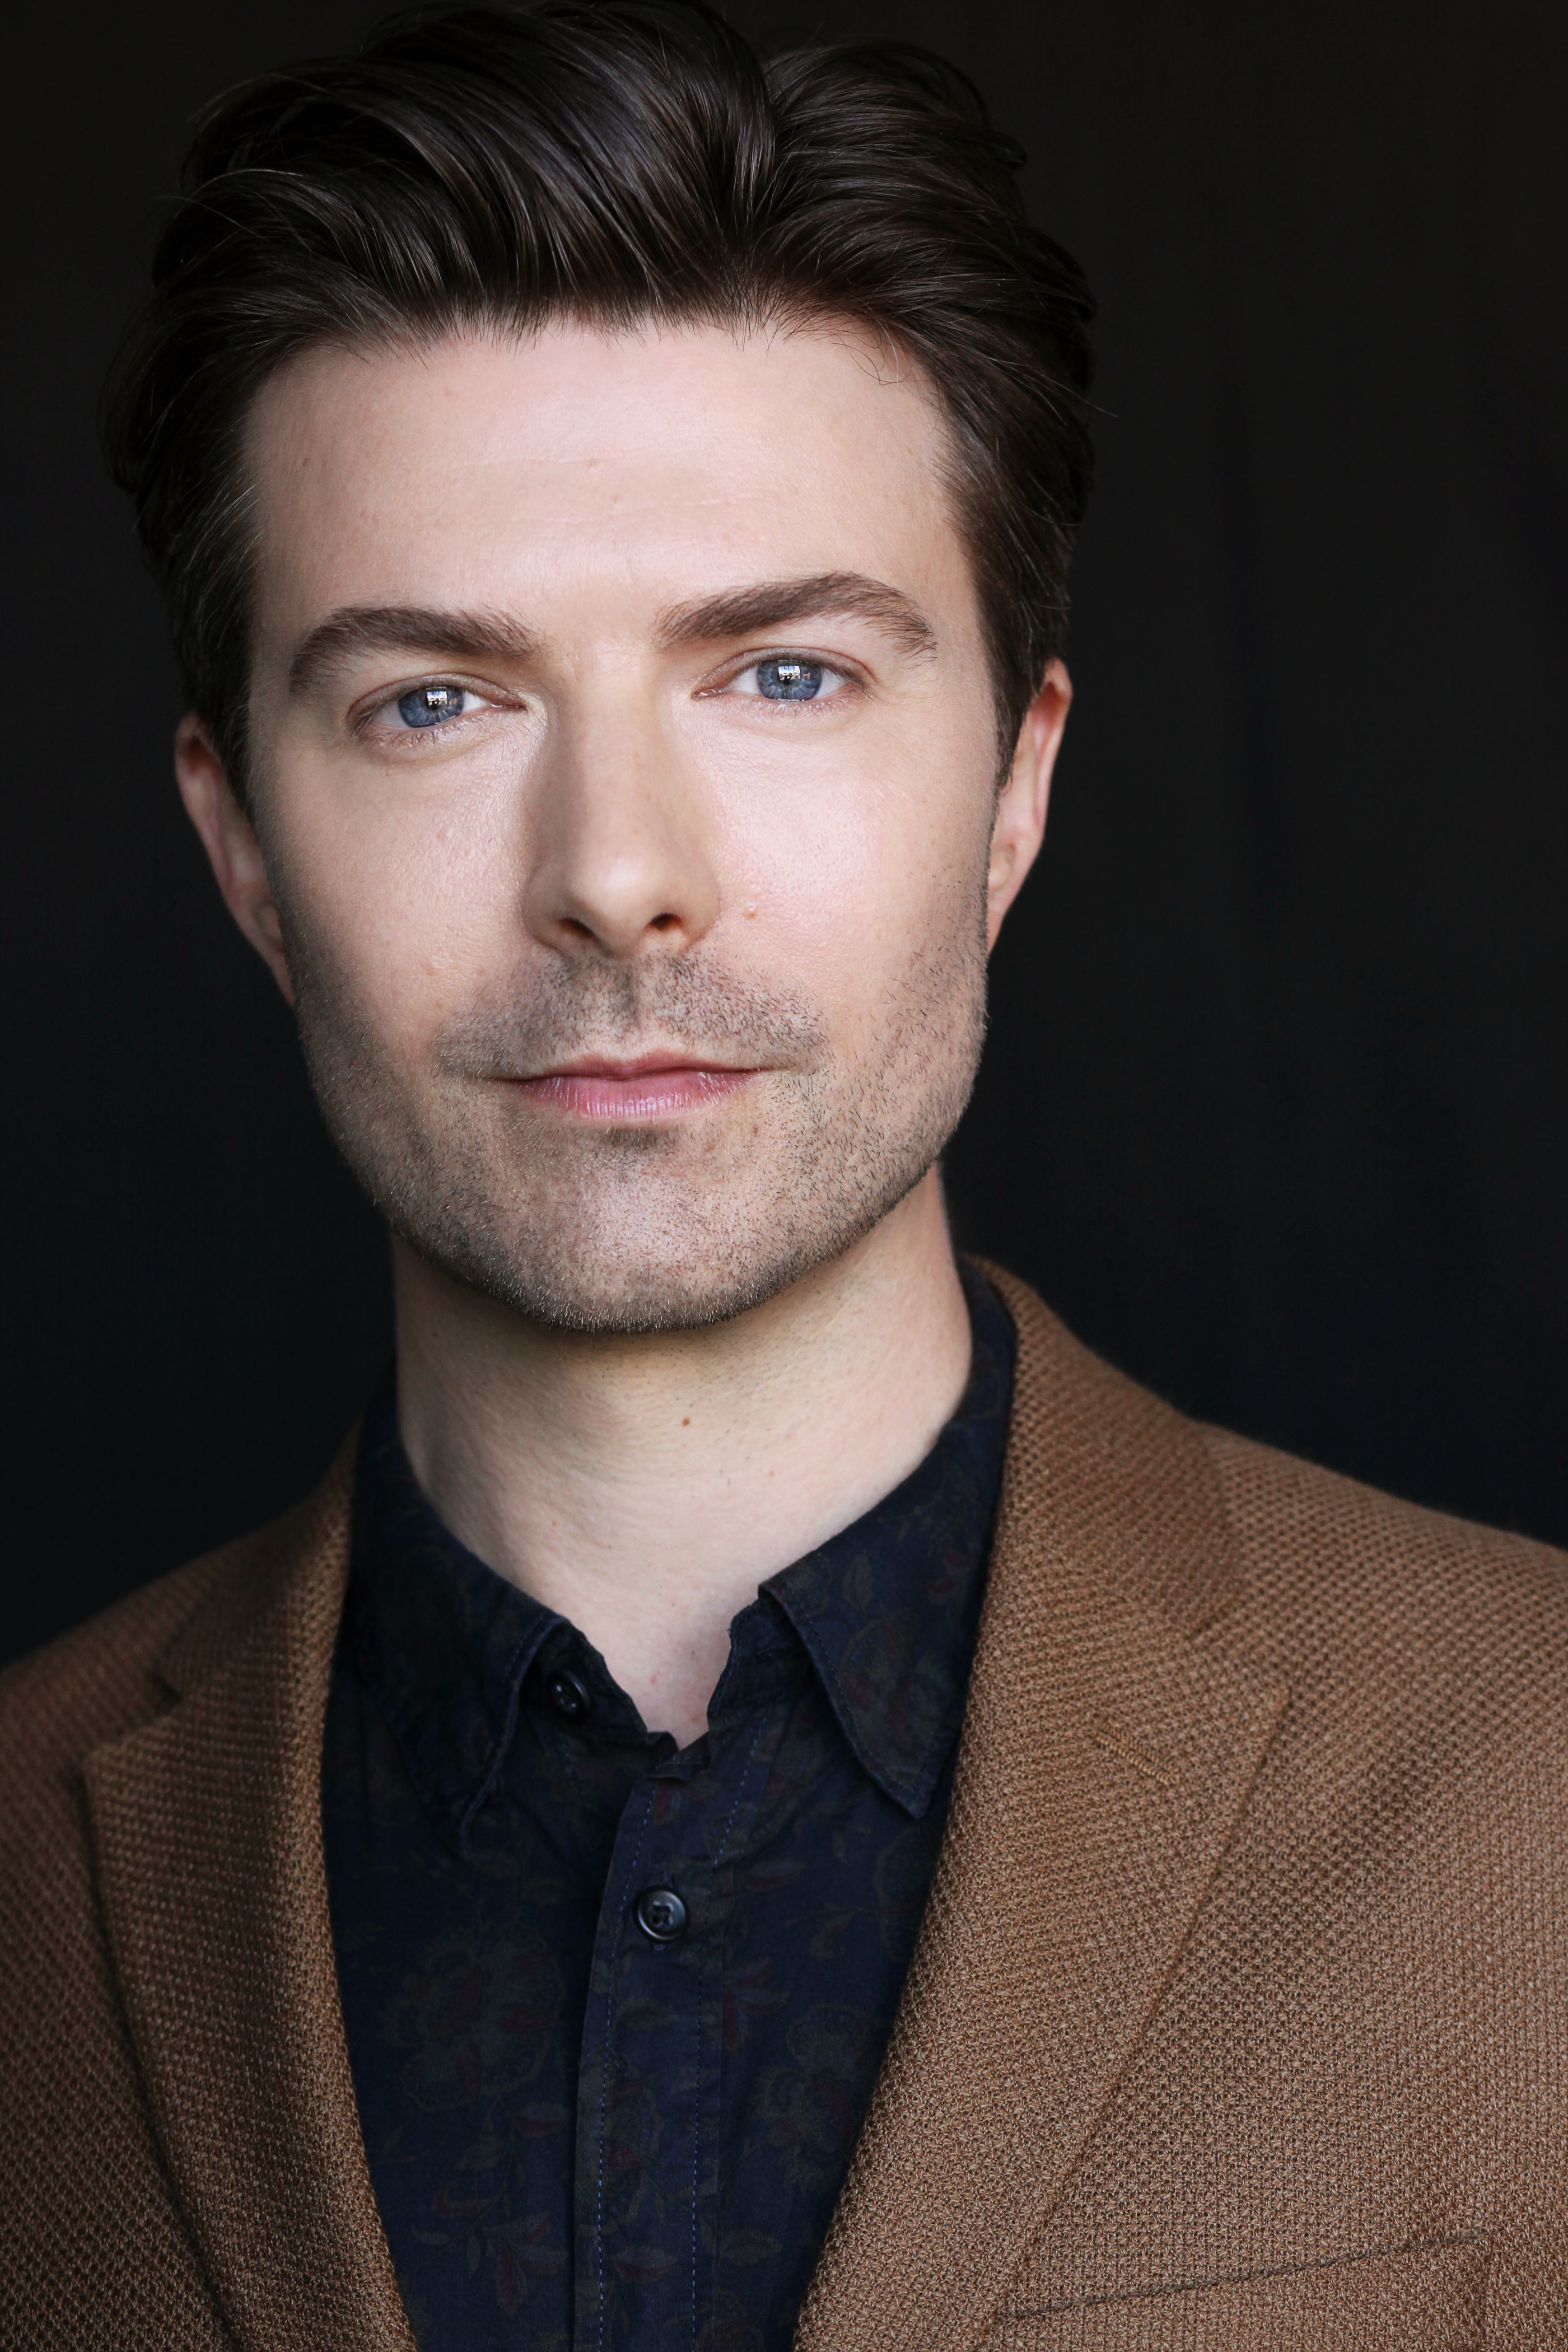 noah bean bowienoah bean height, noah bean, noah bean david bowie, noah bean and lyndsy fonseca, noah bean instagram, noah bean twitter, noah bean bowie, noah bean nikita, noah bean tumblr, noah bean 12 monkeys, noah bean wikipedia, noah bean imdb, noah bean once upon a time, noah bean net worth, noah bean shirtless, noah bean girlfriend, noah bean vinyl, noah bean movies and tv shows, noah bean tom cruise, noah bean wife